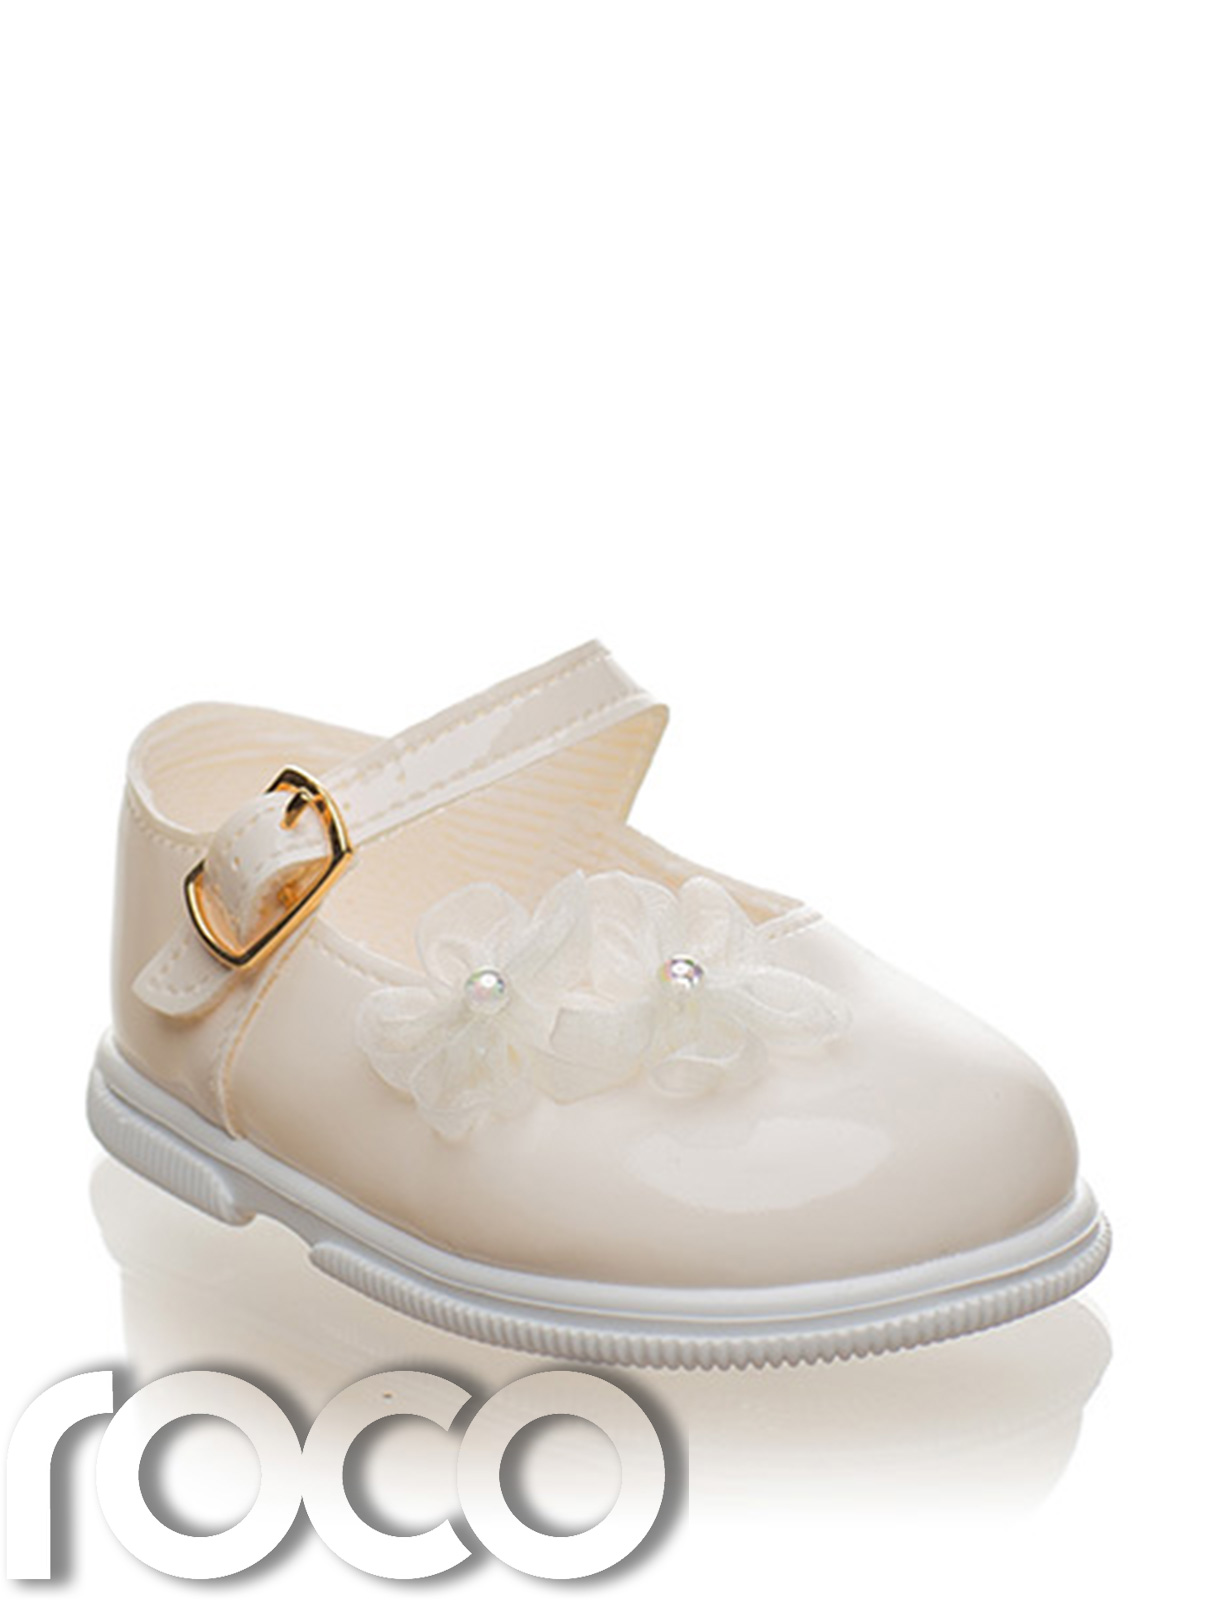 Girls Ivory Shoes Girls Bridesmaid Shoes Ivory Flower Girl Shoes